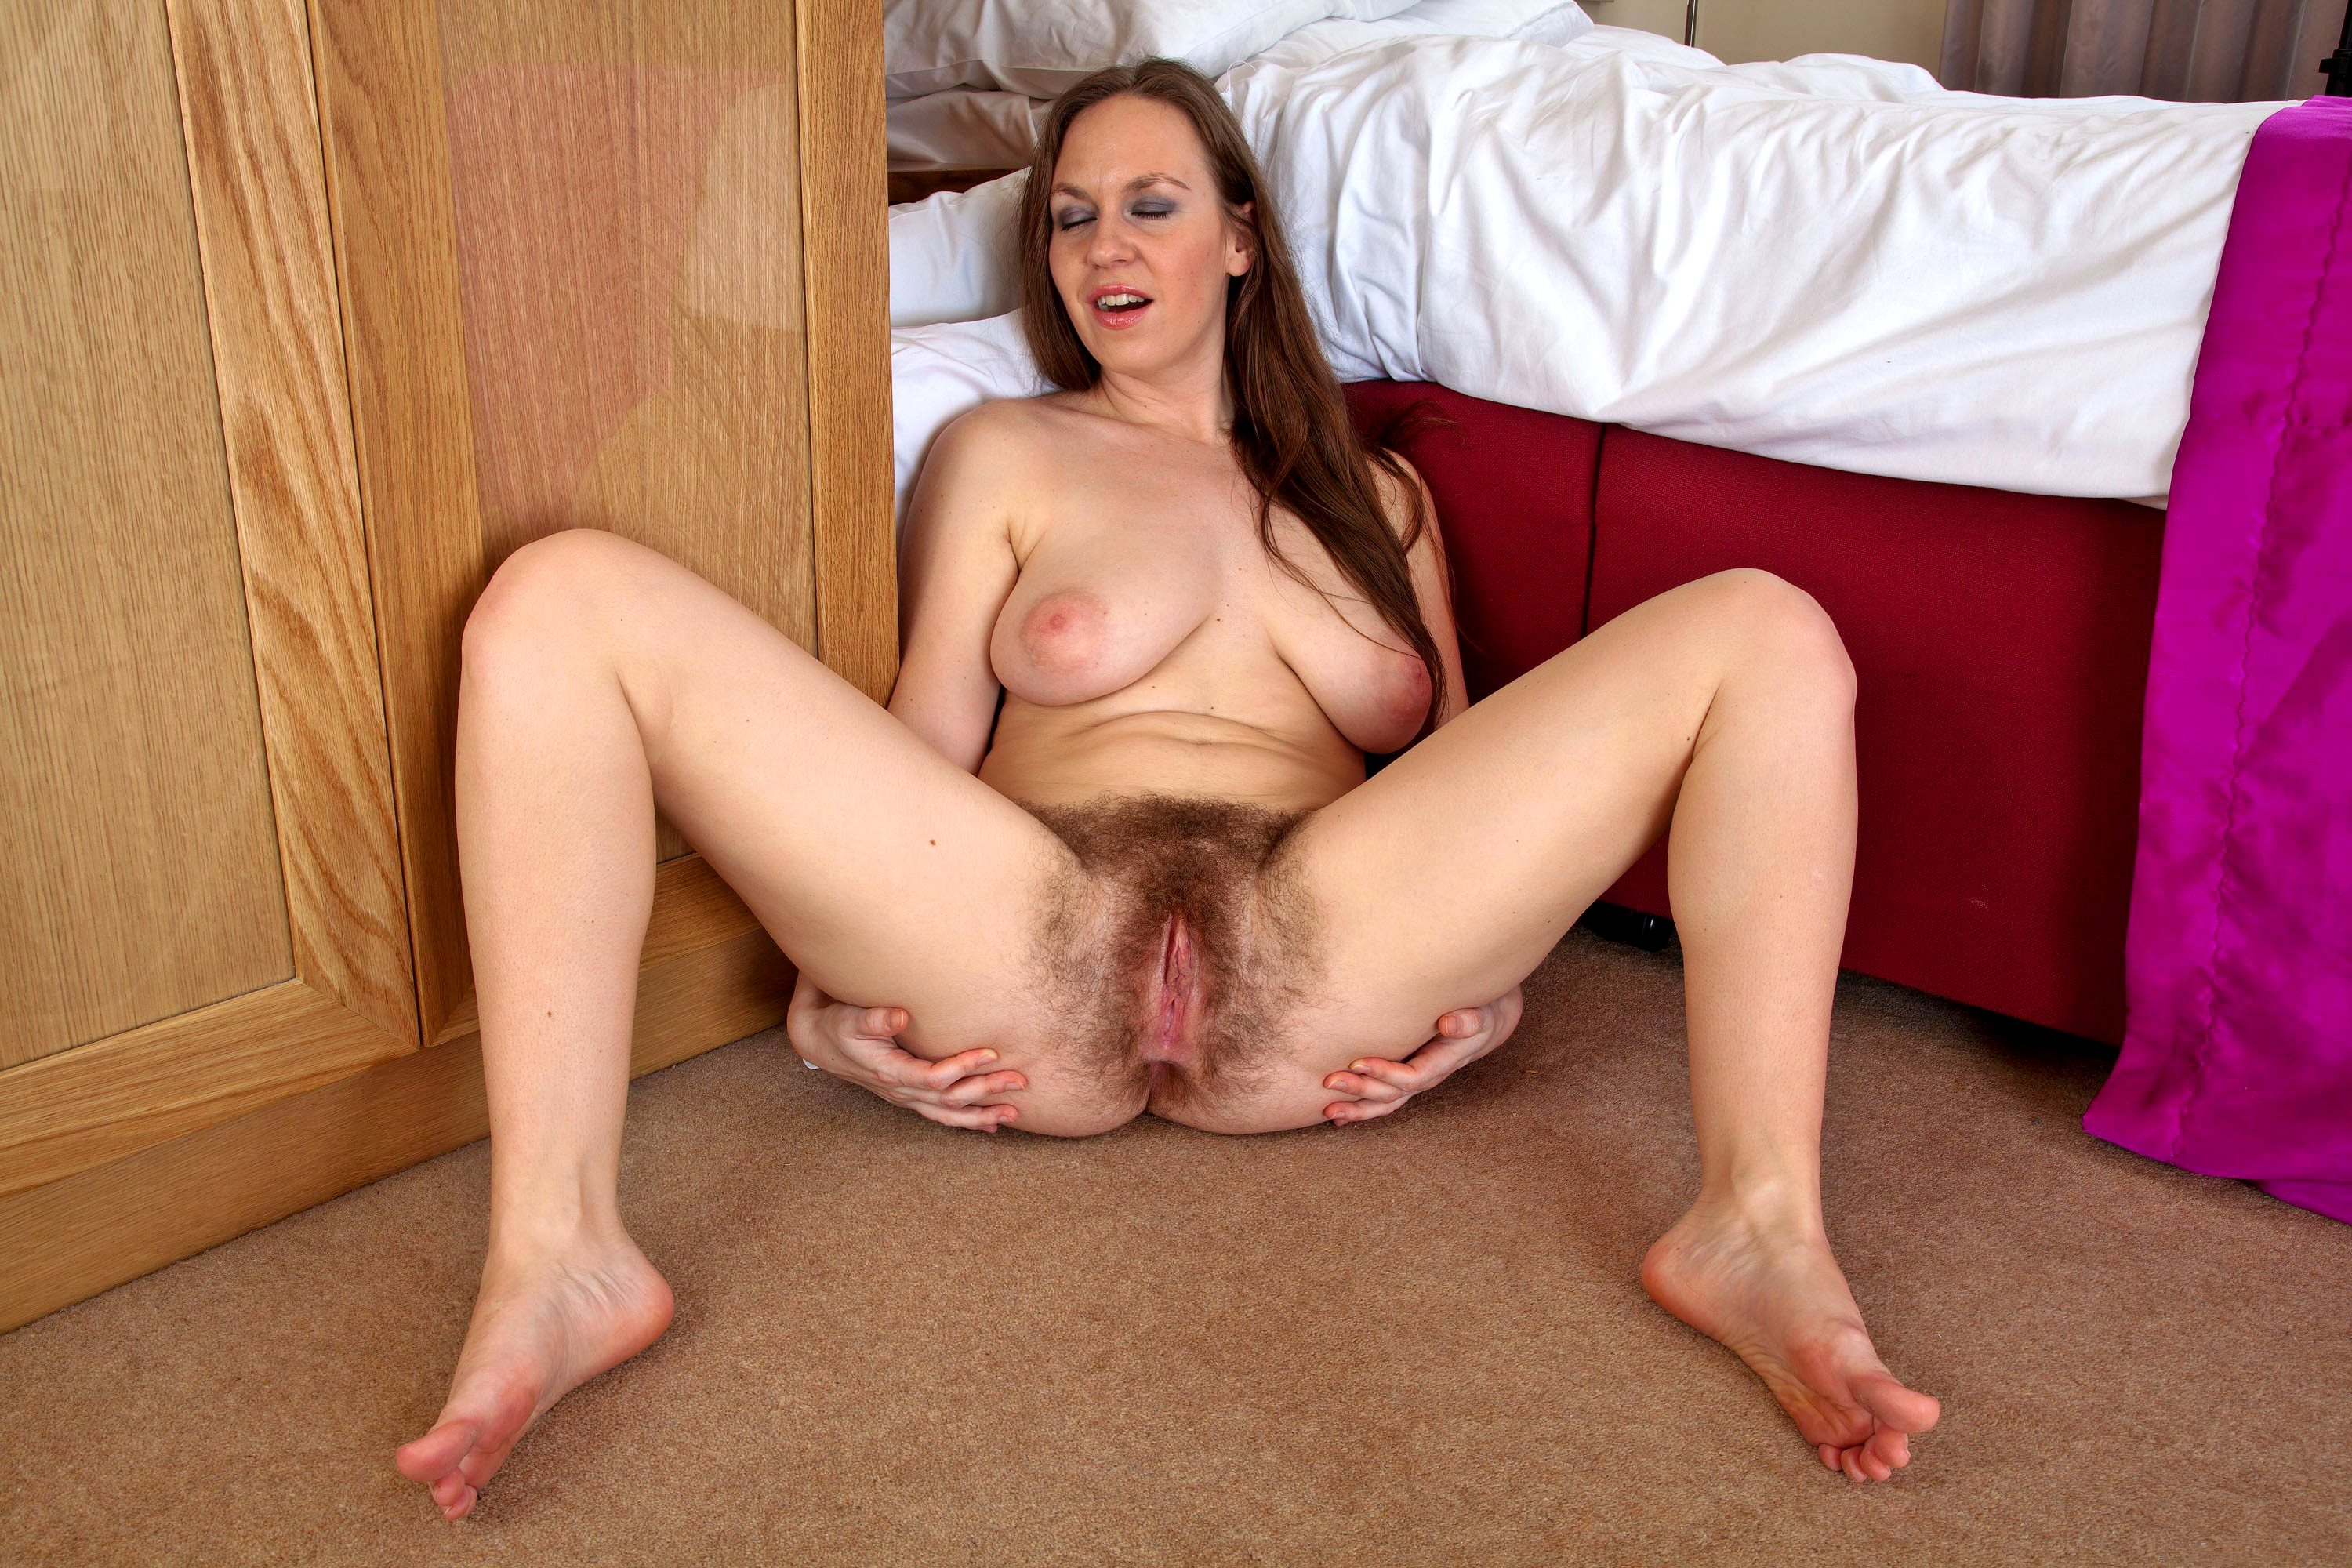 hustler girl on girl sex